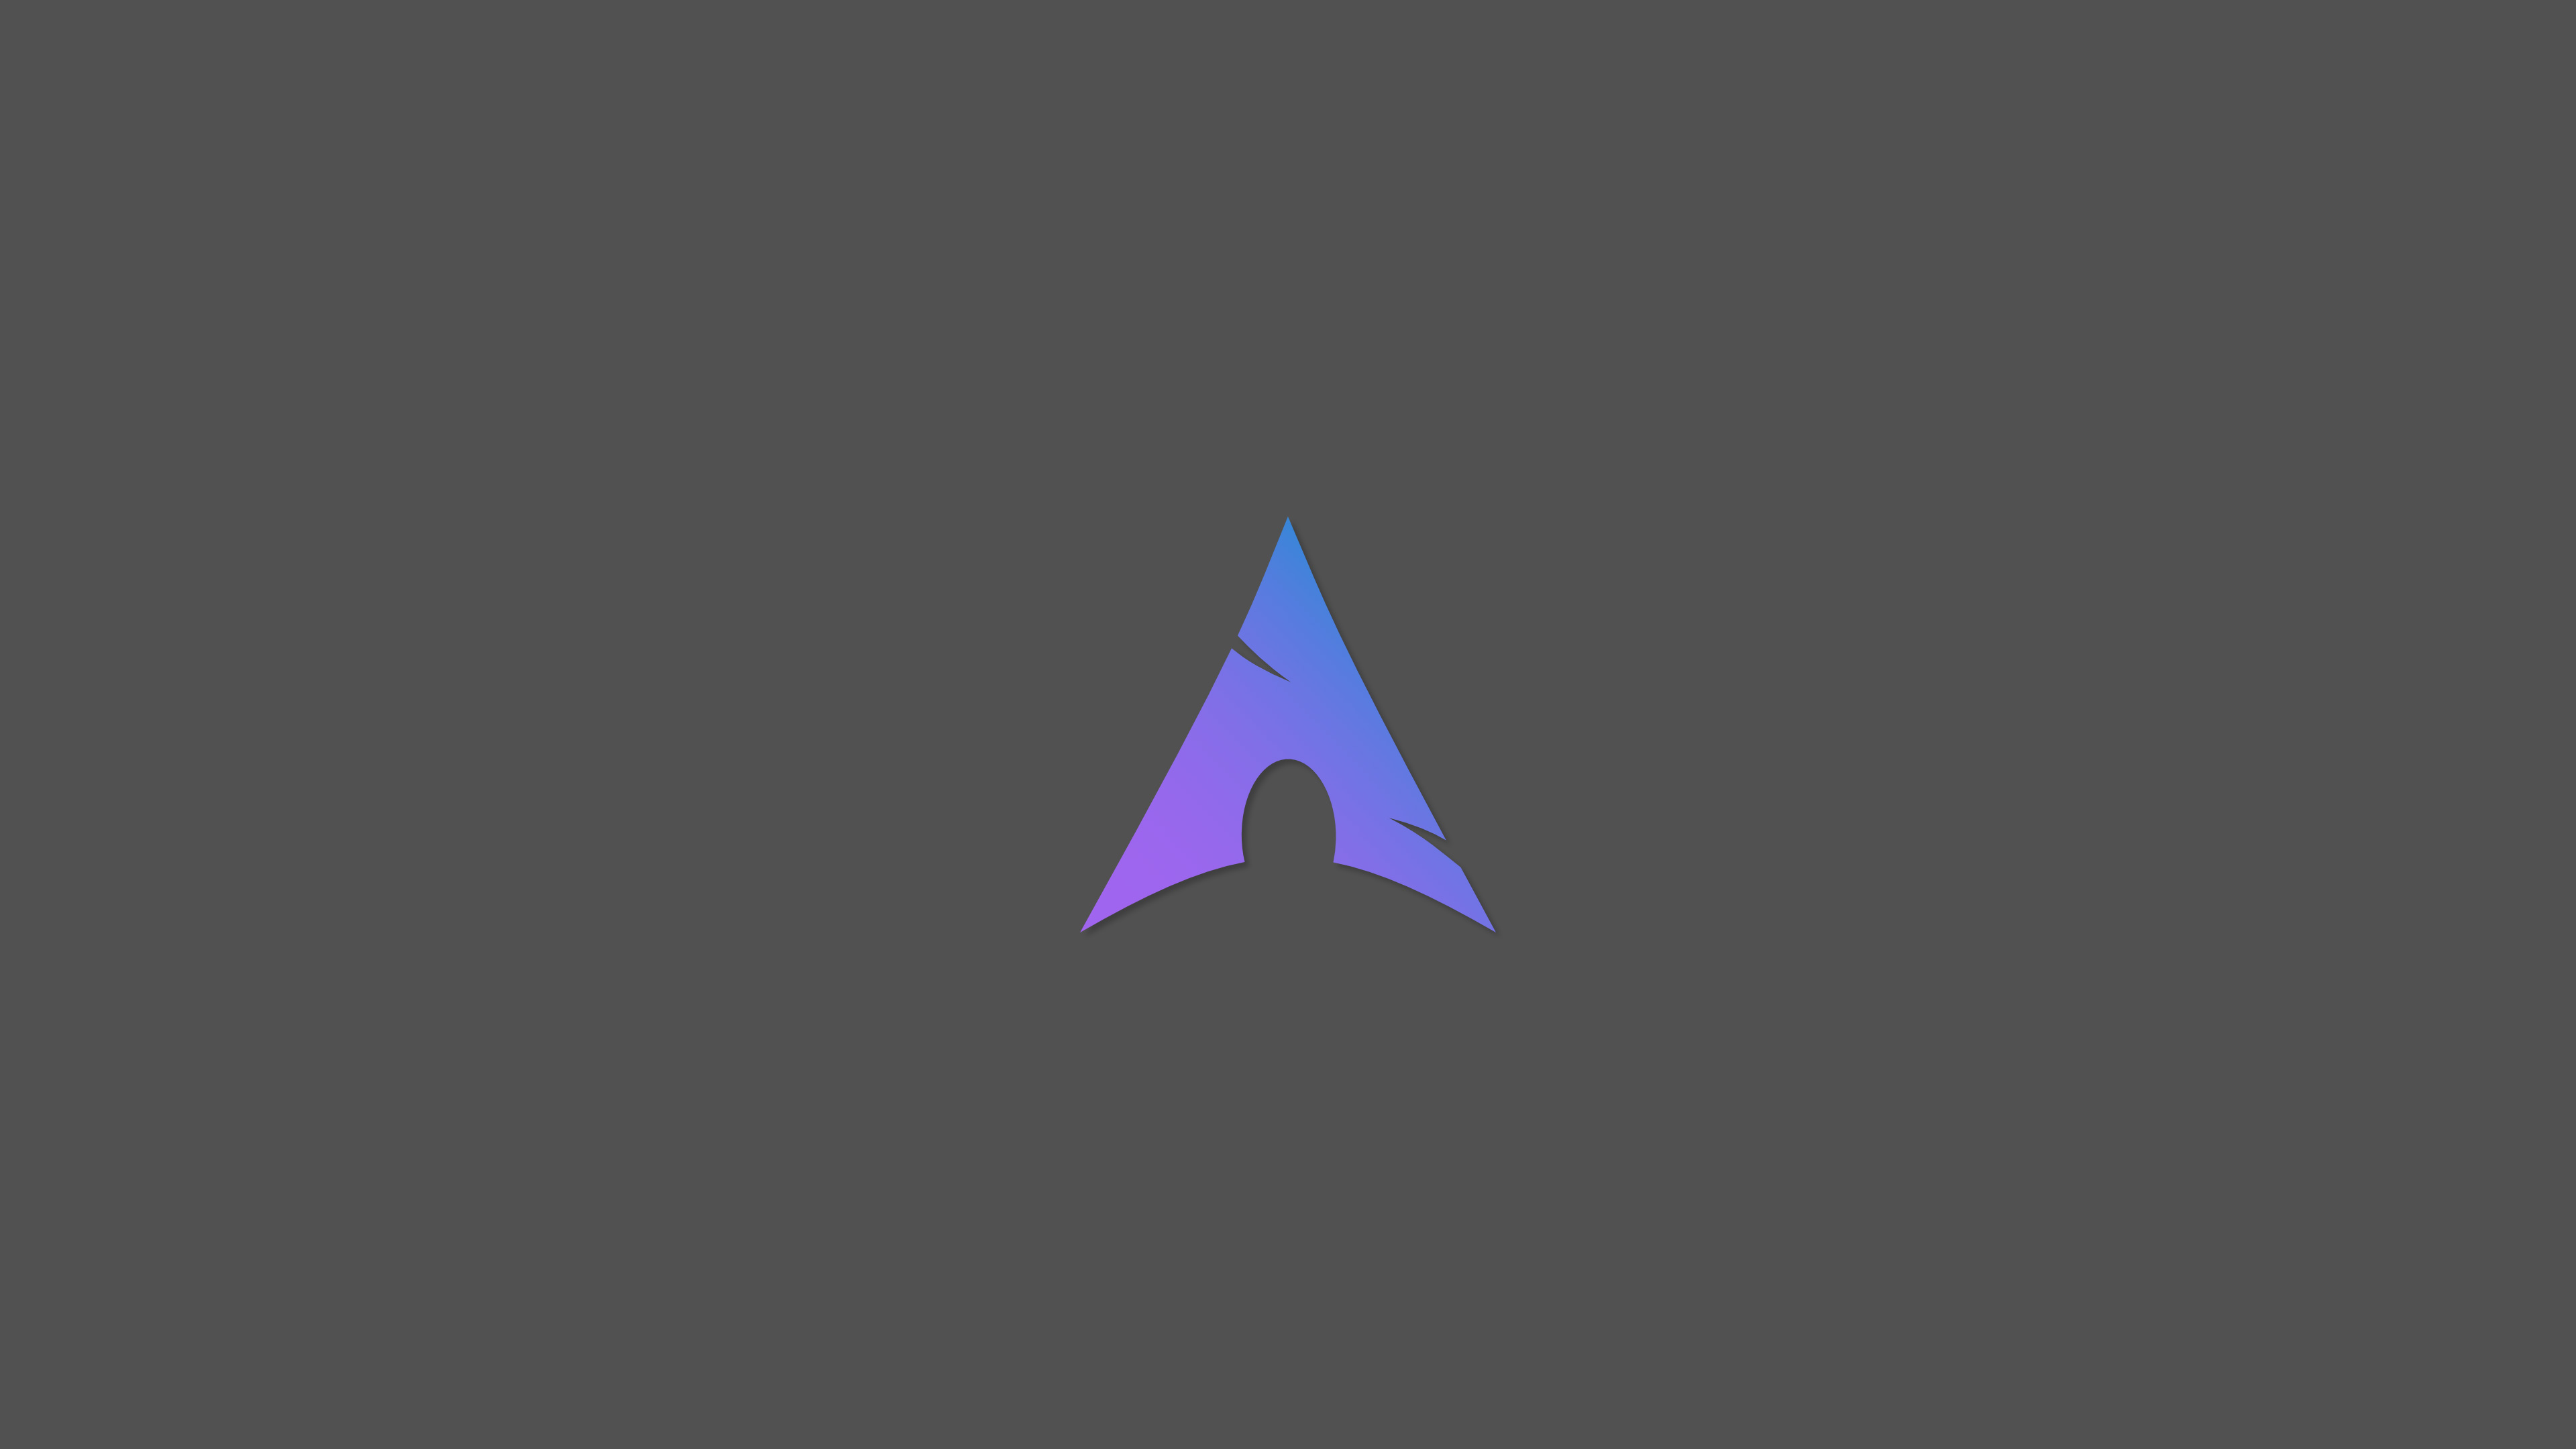 2560x1440 Arch Linux 4k 1440p Resolution Hd 4k Wallpapers Images Backgrounds Photos And Pictures